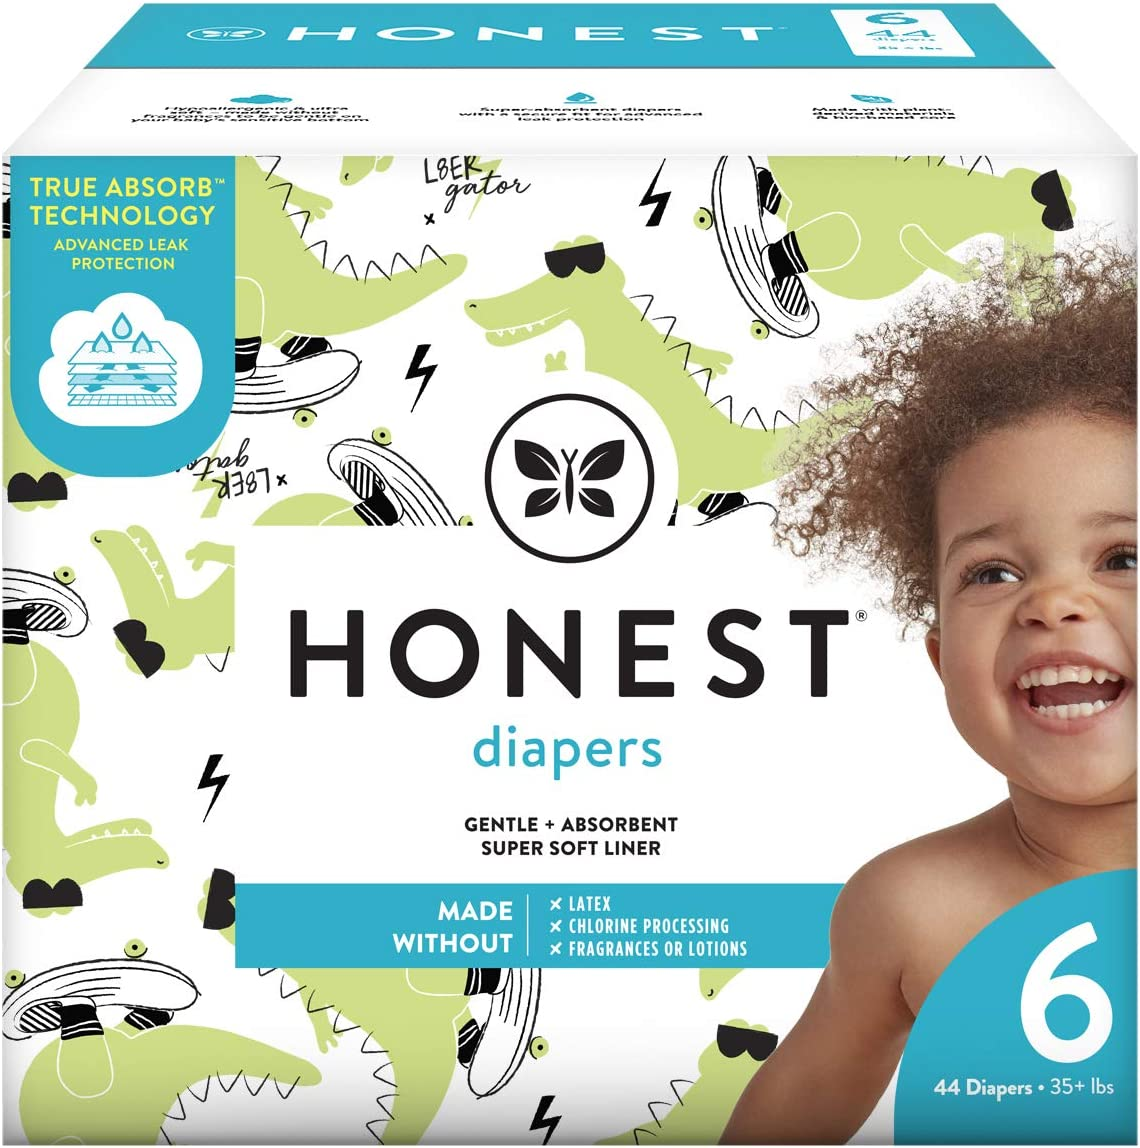 The Honest Company The Honest Company Club Box Diapers with Trueabsorb Technology, L8ter Gator, Size 6, 44 Count